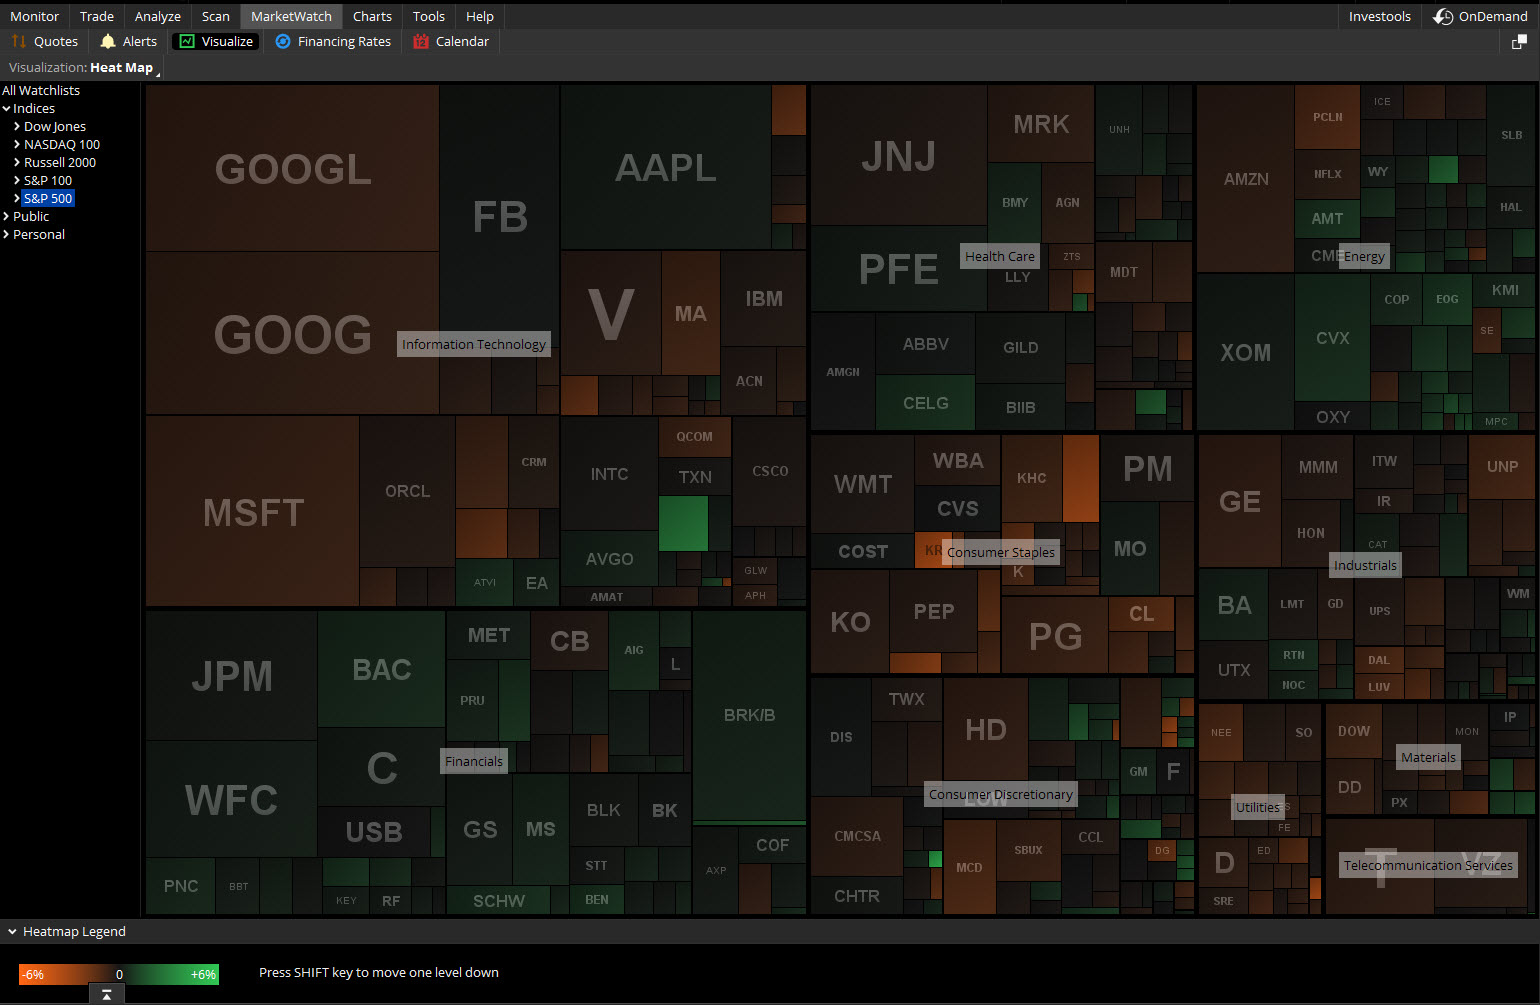 S&P 500 Sector Heat Map